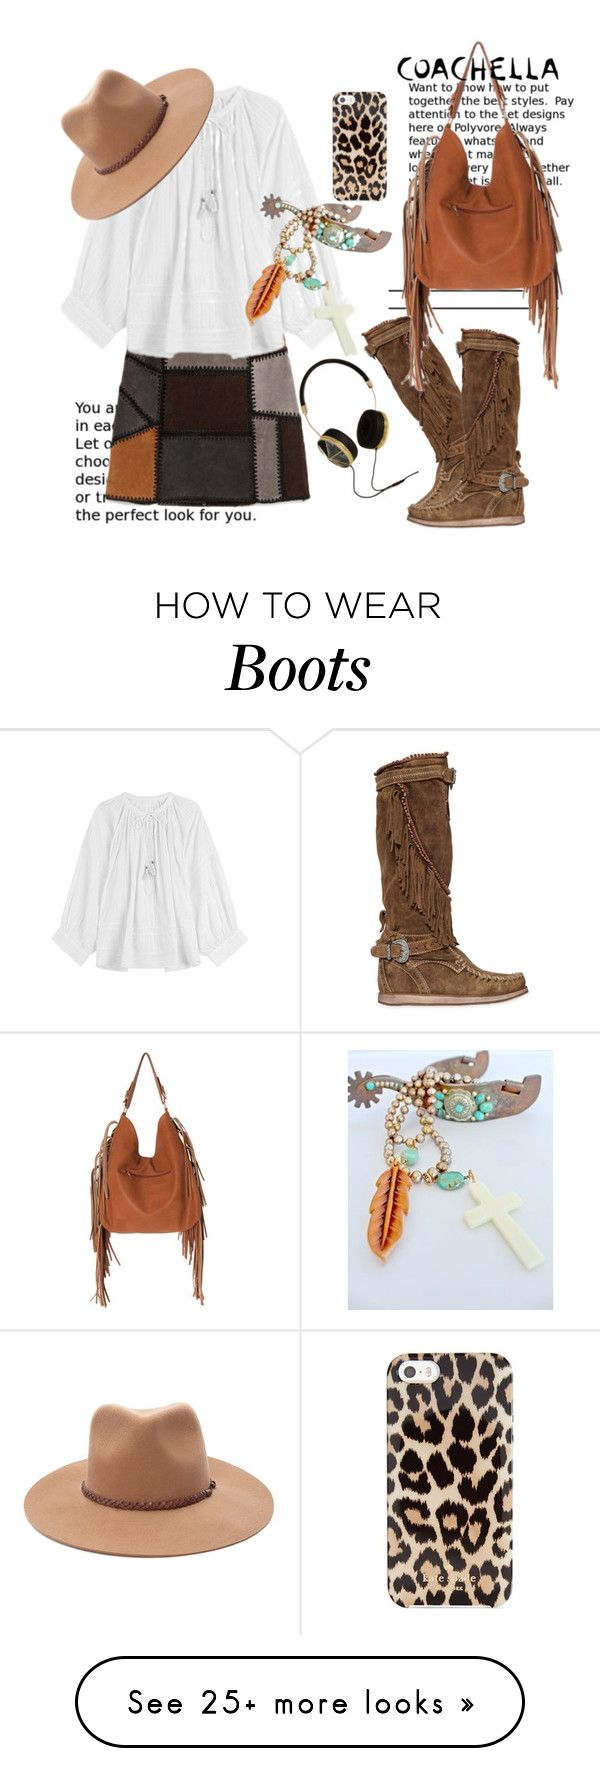 """Coachella Style"" by hattie4palmerstone on Polyvore featuring Zadig & Voltaire, El Vaquero, Kate Spade, Frends, Sans Souci, Forever 21 and packforcoachella"